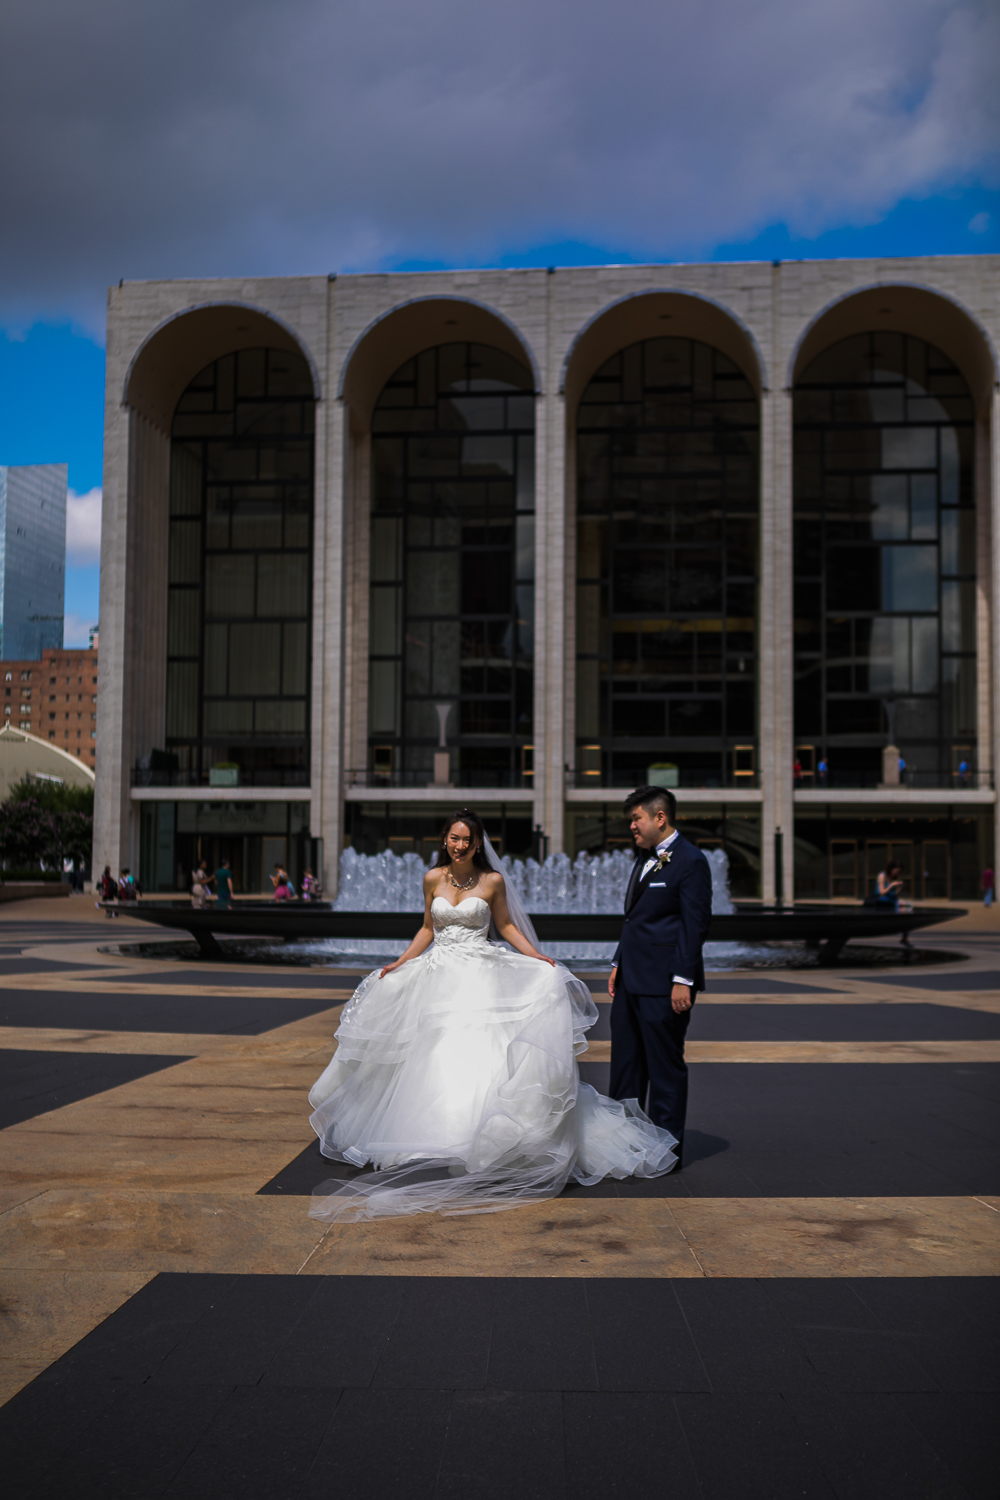 Portrait of a couple posing for wedding portraits at Lincoln Center in New York City   Lincoln Center Wedding Photos   Jason and Susanna's Glam NYC Elopement